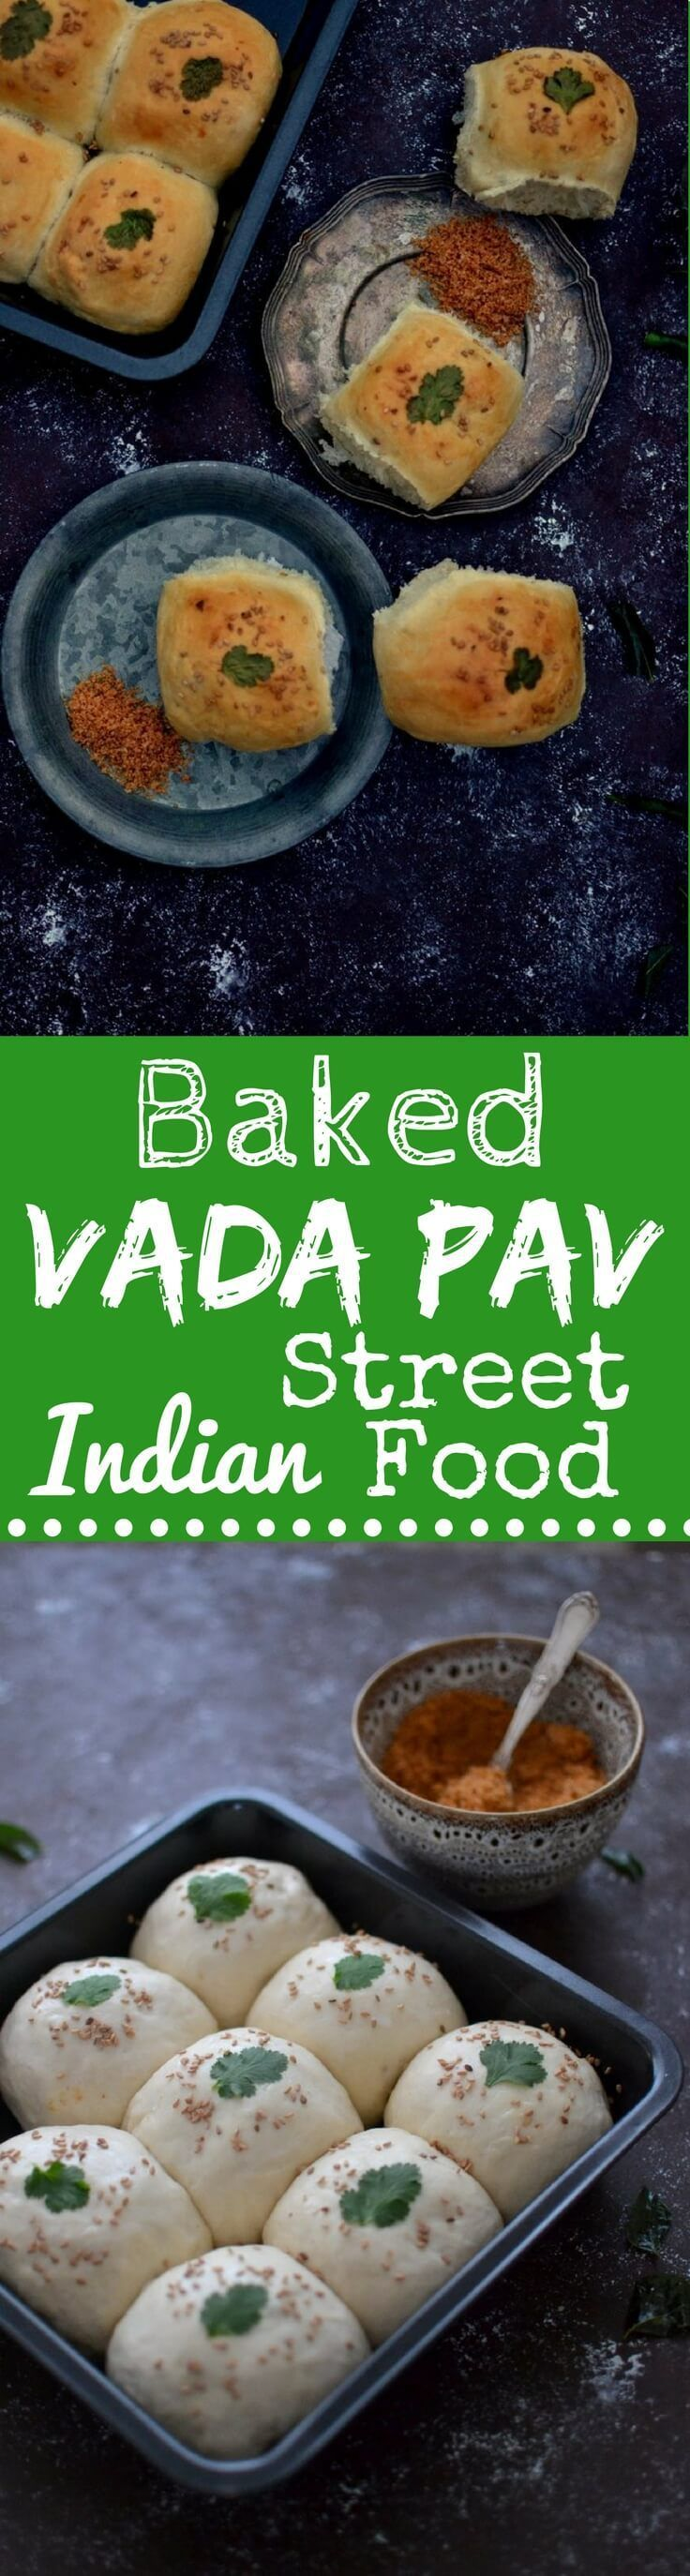 Baked Vada Pav, a Scrumptious Indian Street Food of Soft Buns baked with a Spicy Potato Filling, will transport you to the streets of Mumbai!